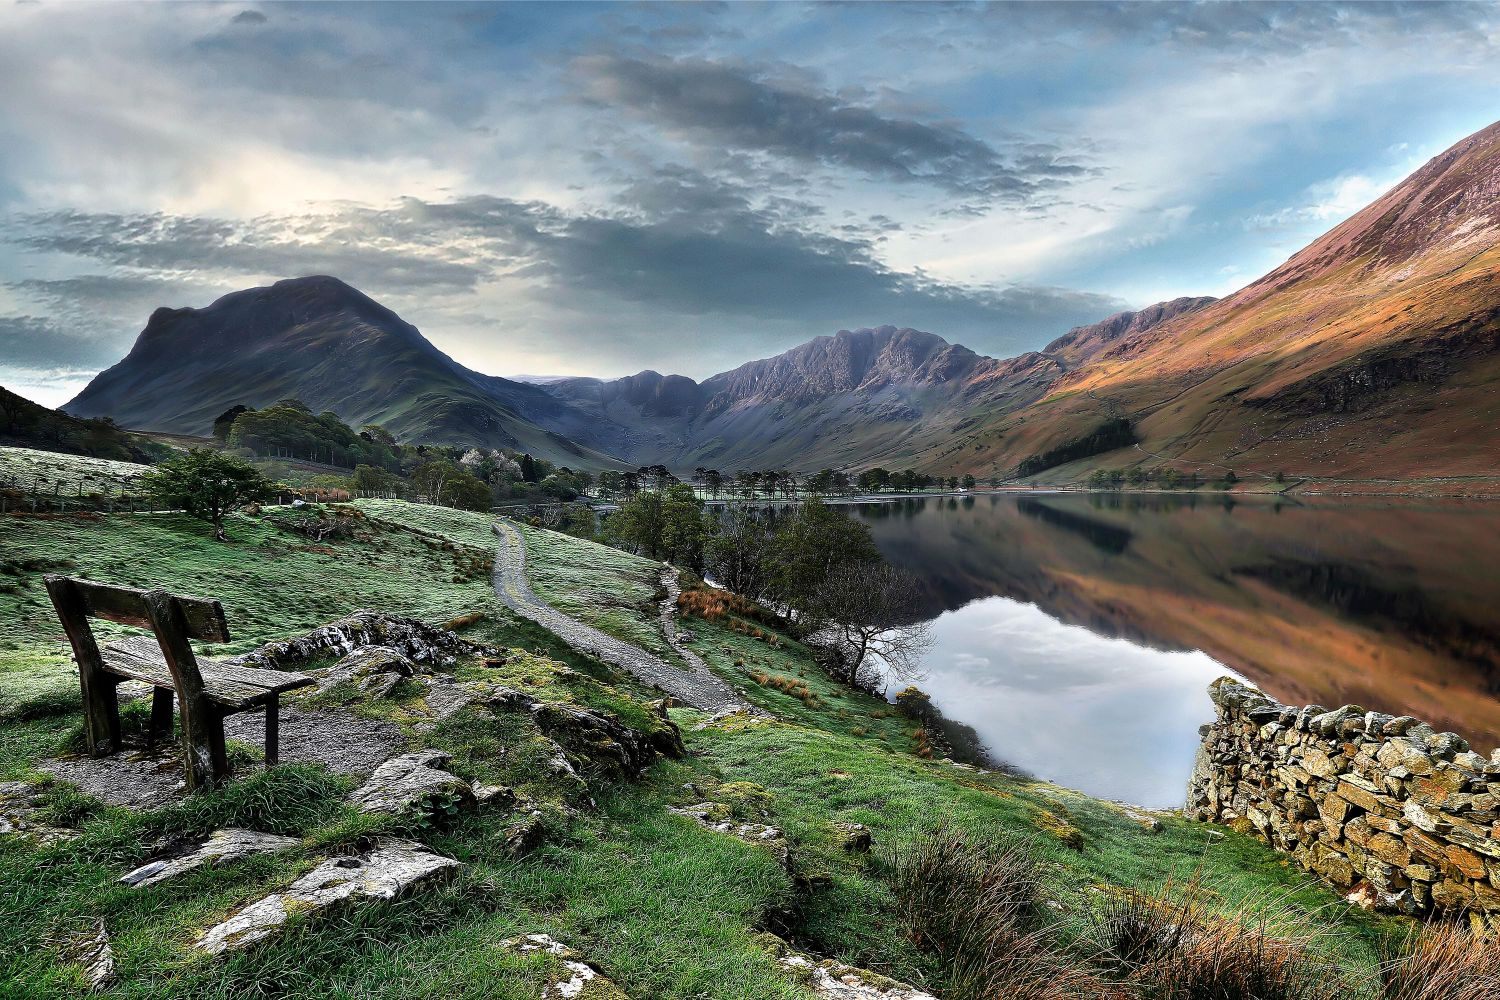 Dawn breaks over Buttermere - by Martin Lawrence